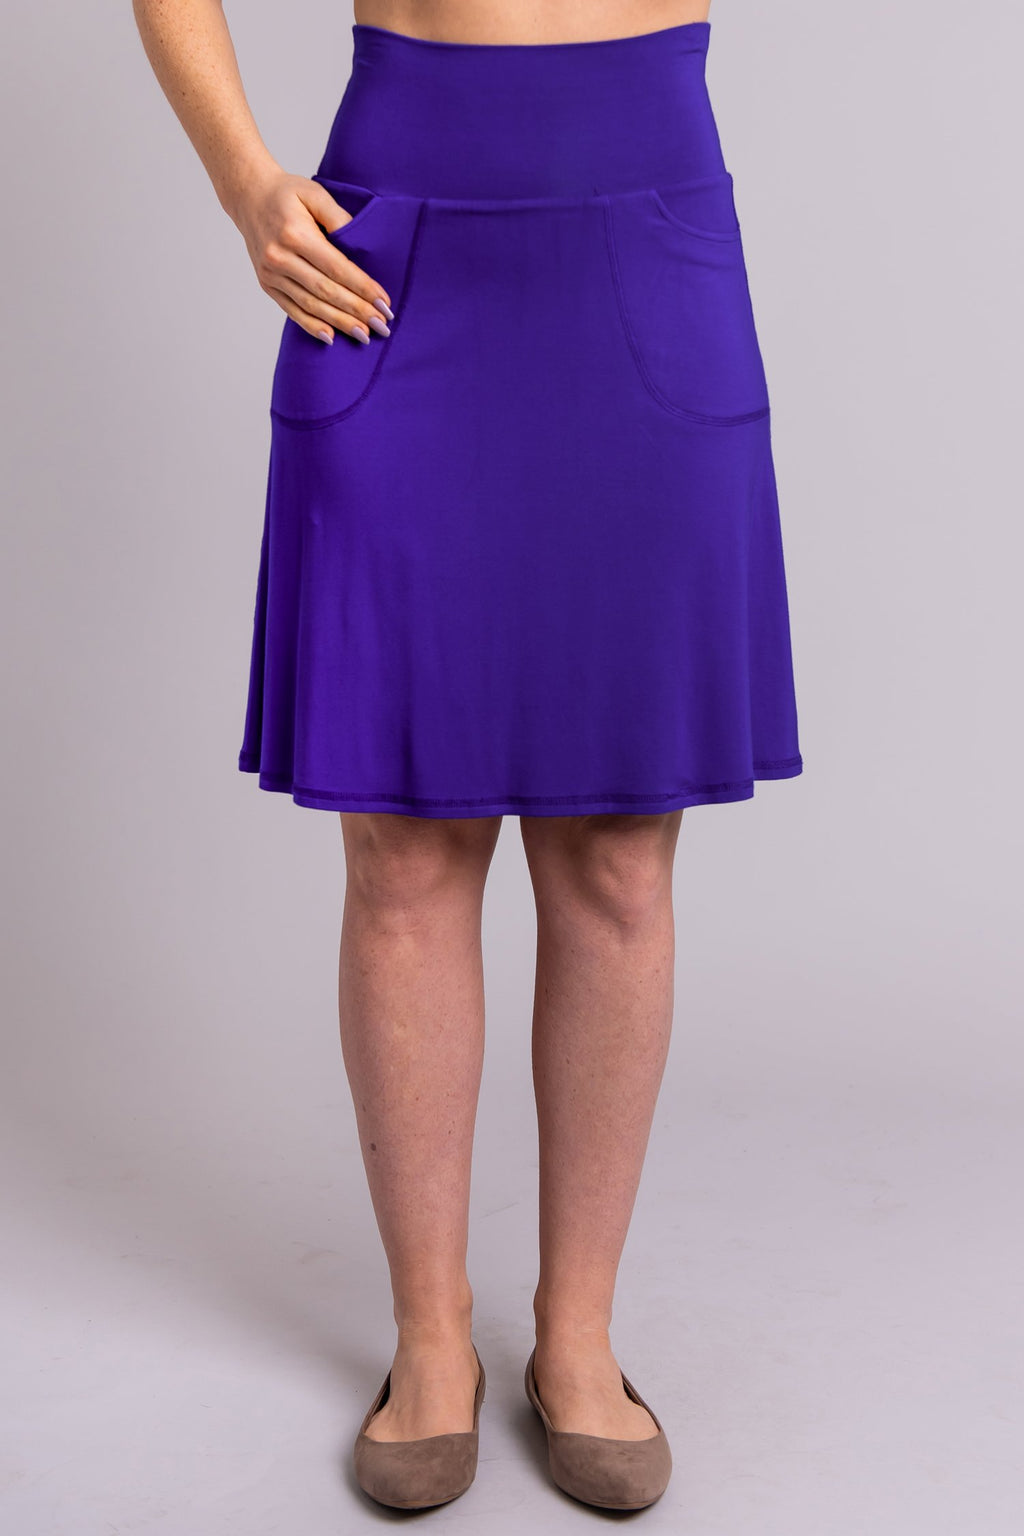 Magna Skort, Violet - Blue Sky Clothing Co